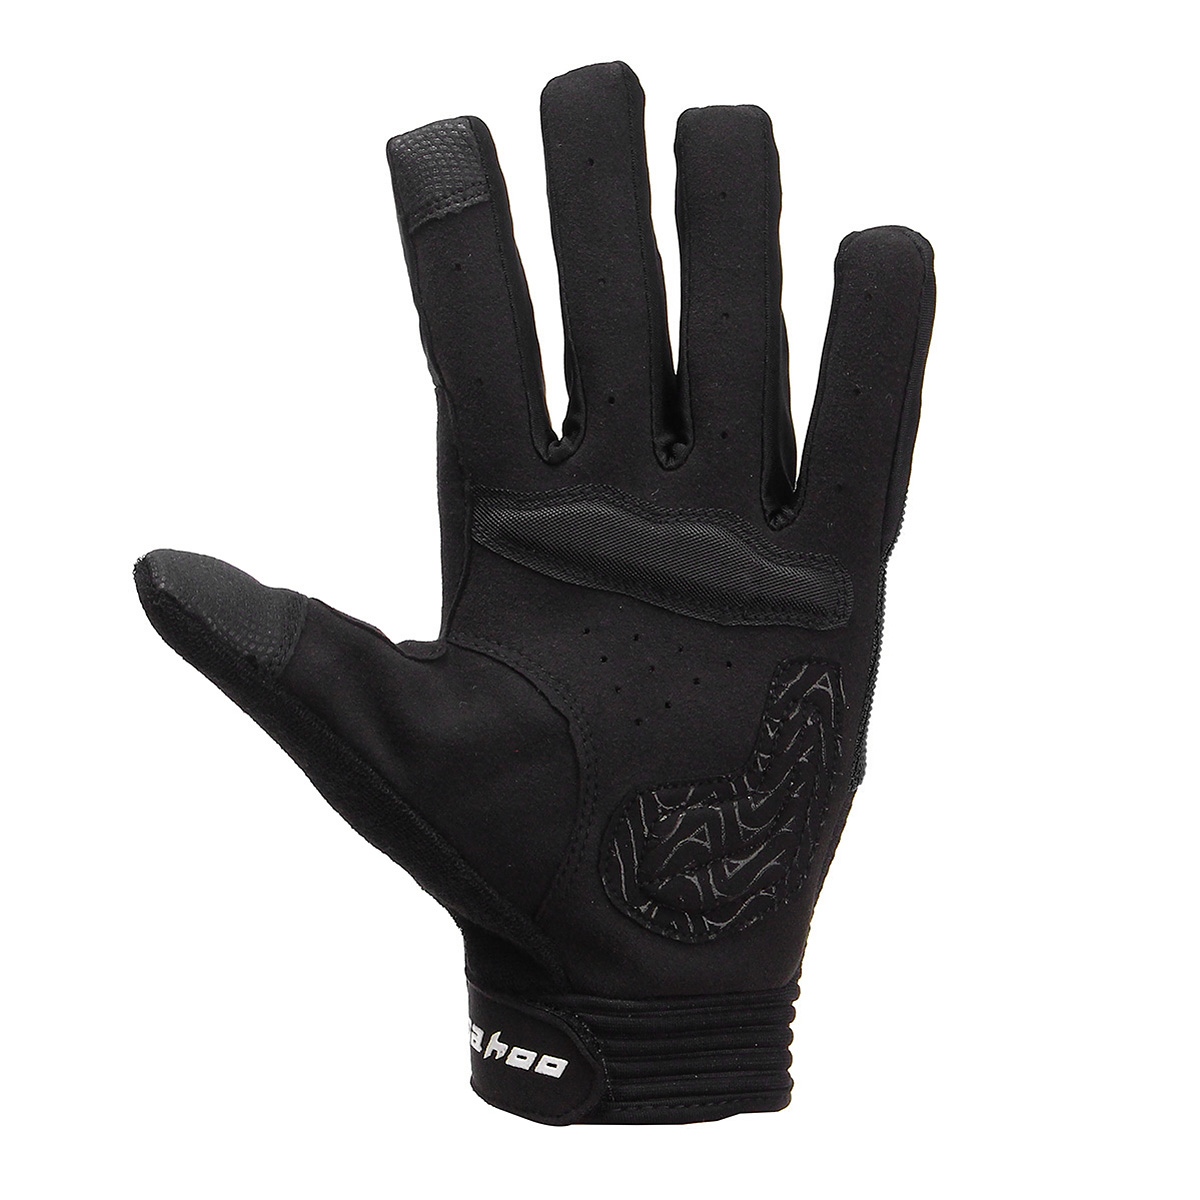 SAHOO Winter Cycling Gloves Full Finger Bike Motorcycle Warm Gloves